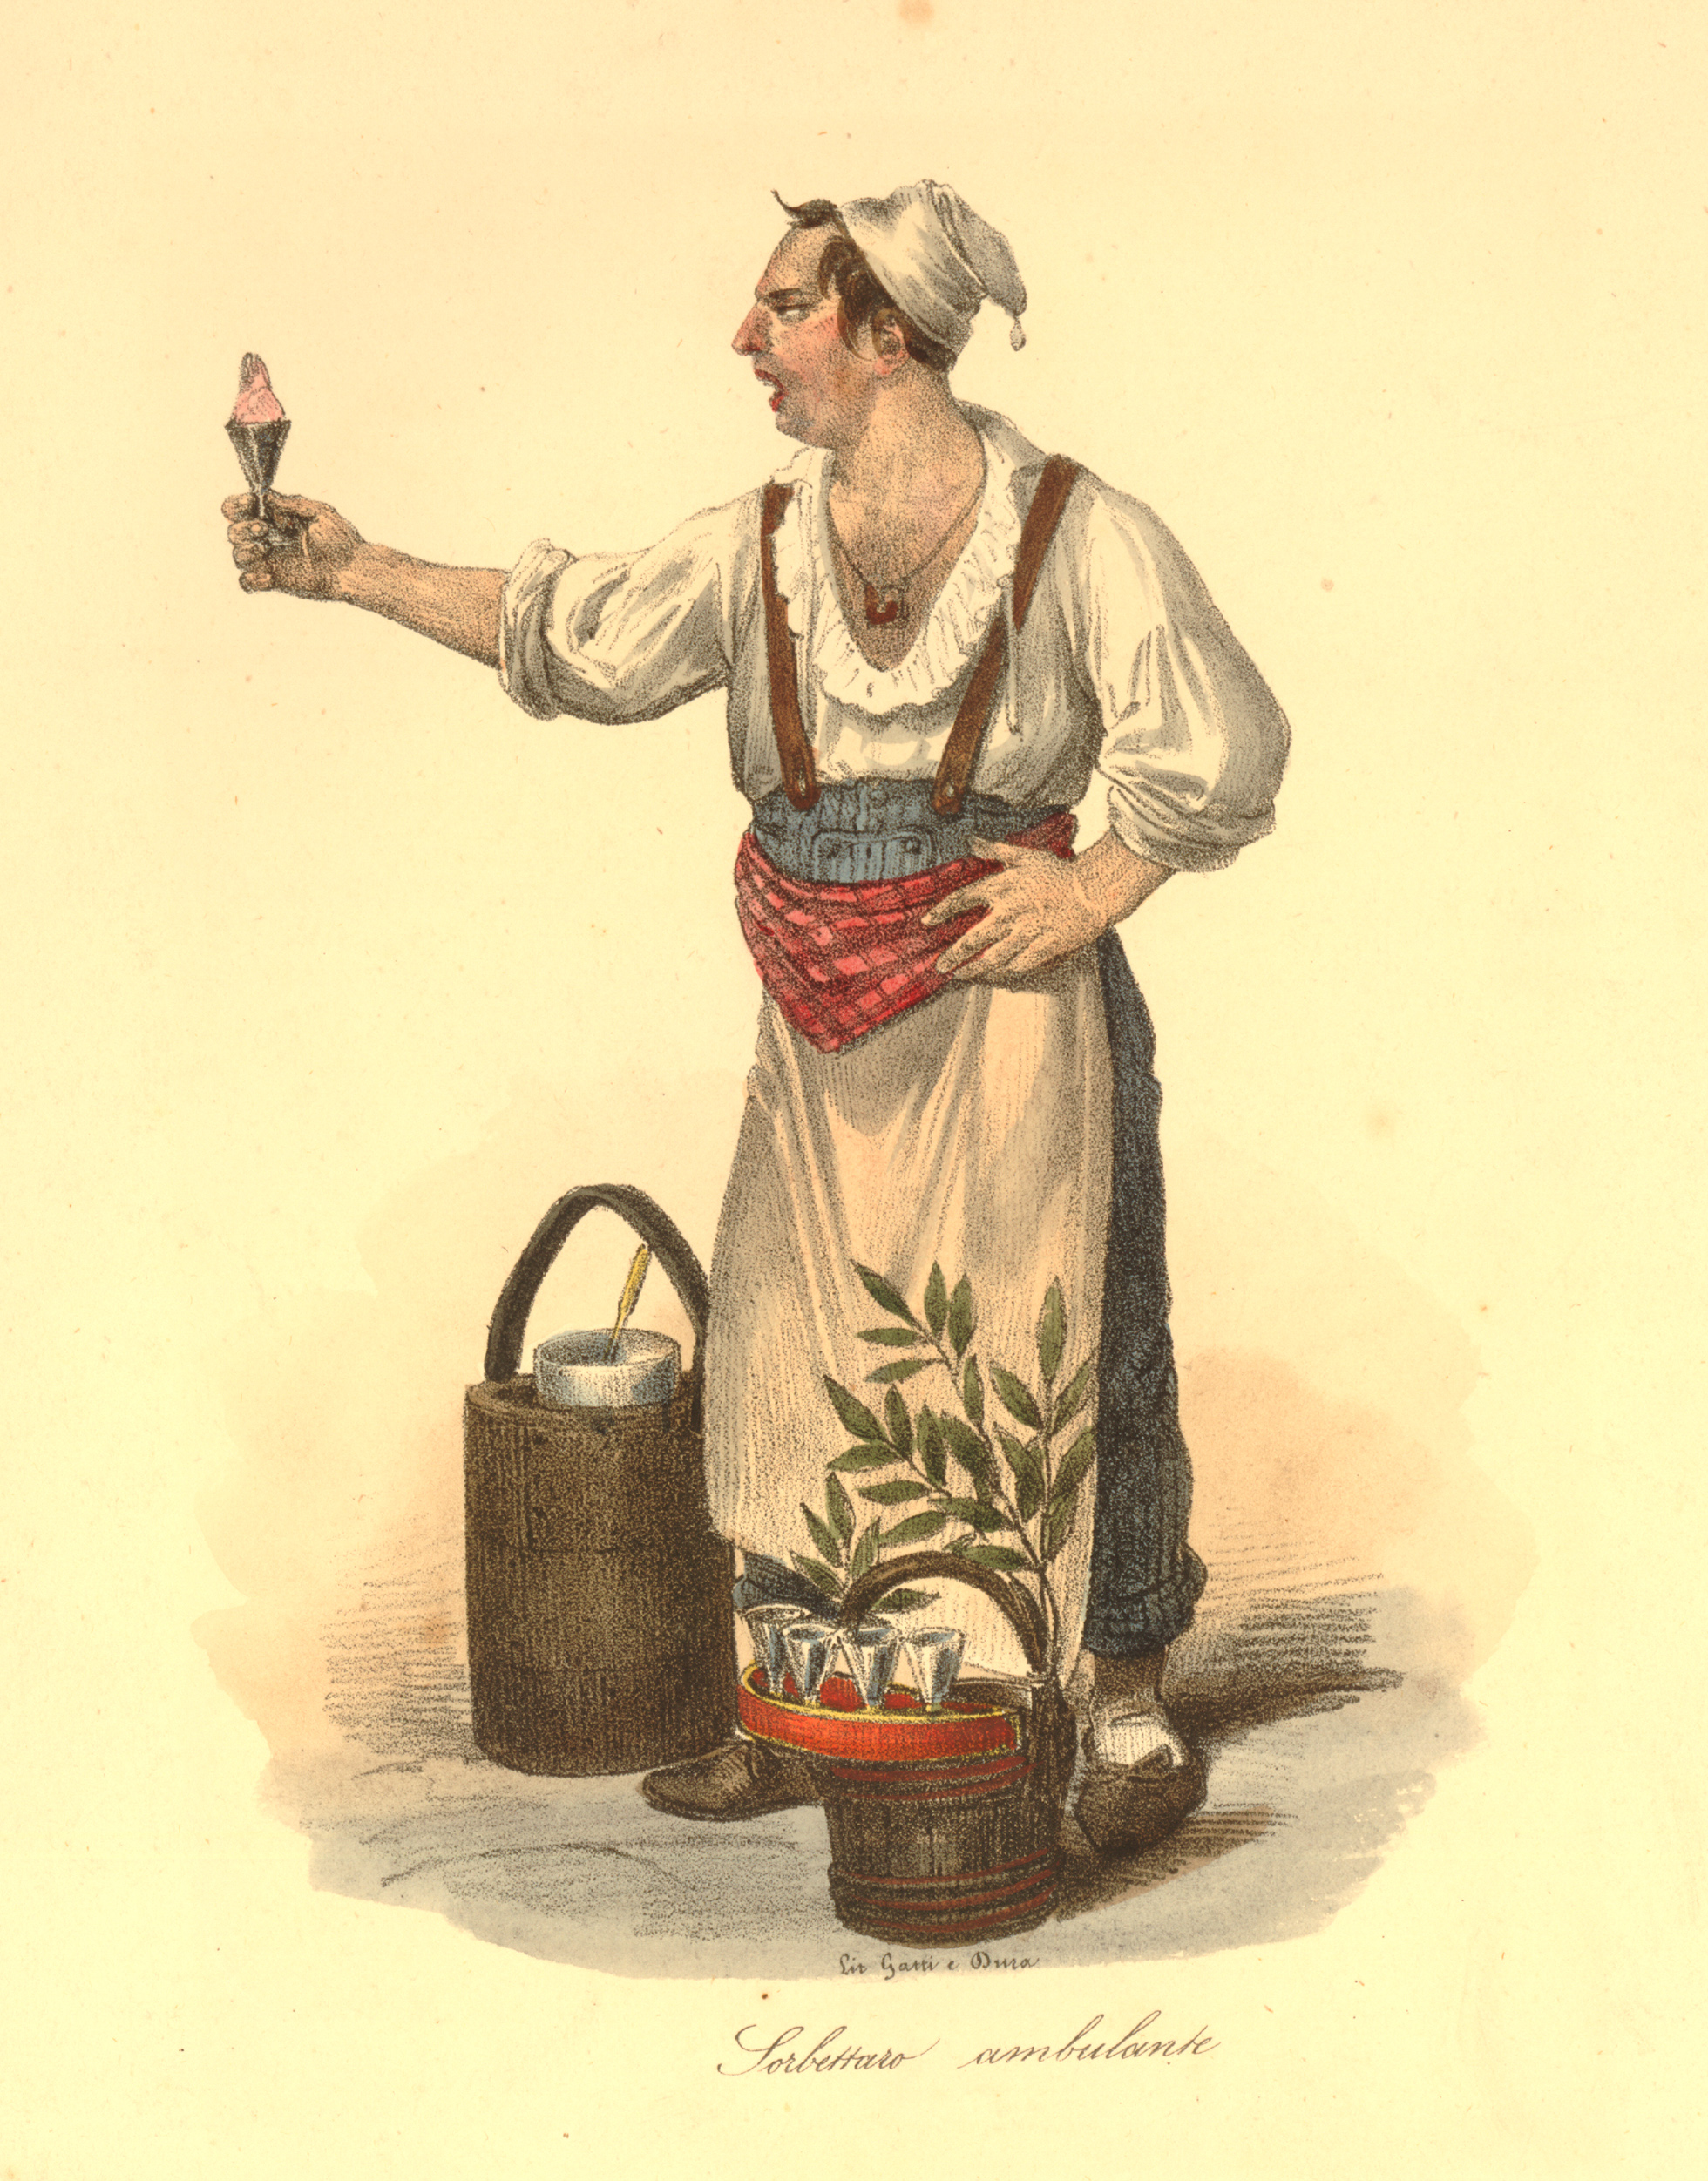 A colour print of a sorbet seller who is holding a glass cone of sorbet and stands next to a sorbetiere.